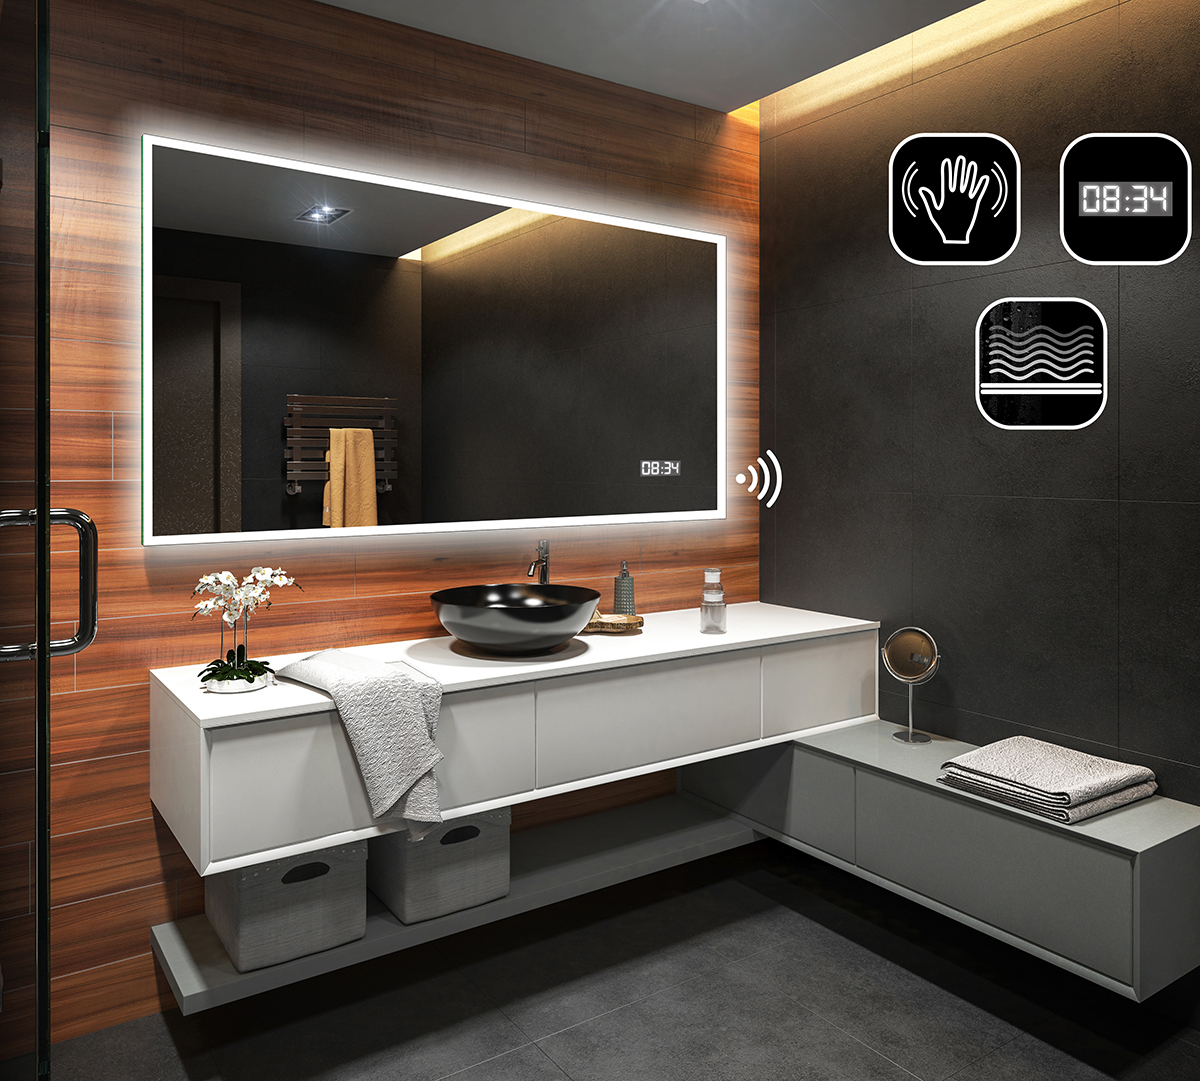 Modern LED Illuminated Bathroom Mirror